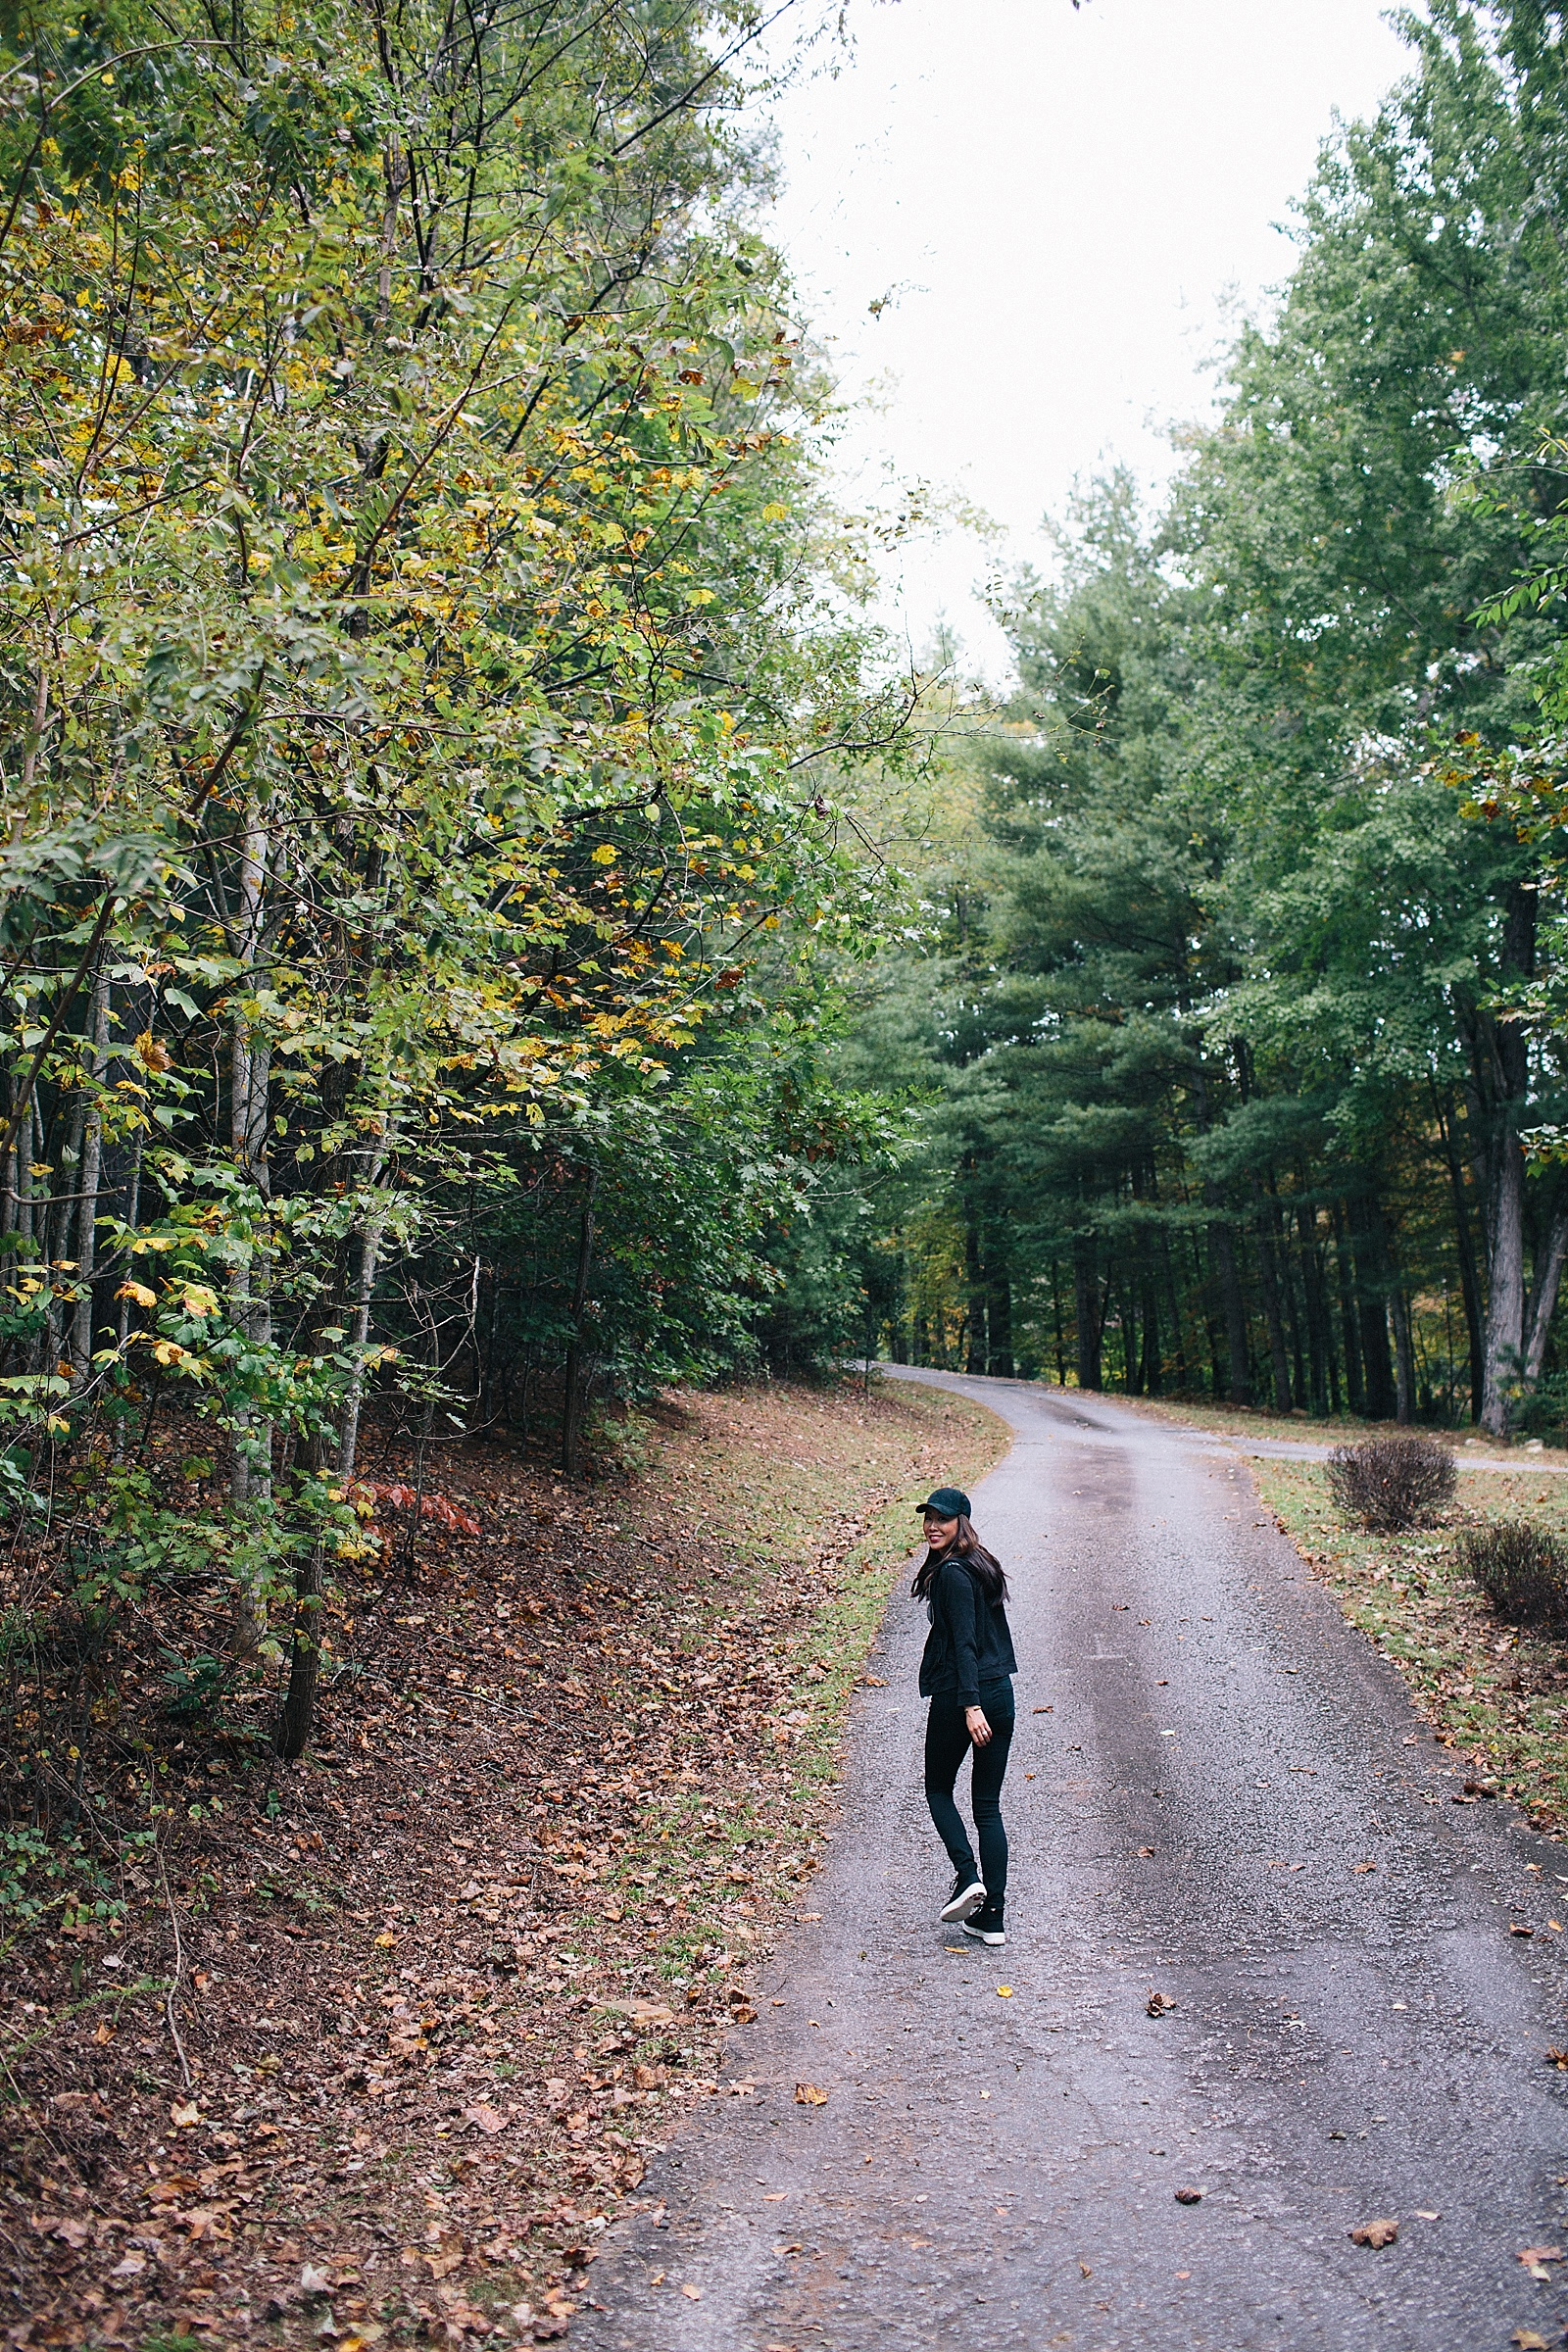 diana-elizabeth-blog-travel-blogger-fit-flop-high-tops-fashion-north-carolina-hendersonville-little-willow-falls-20161021_0011